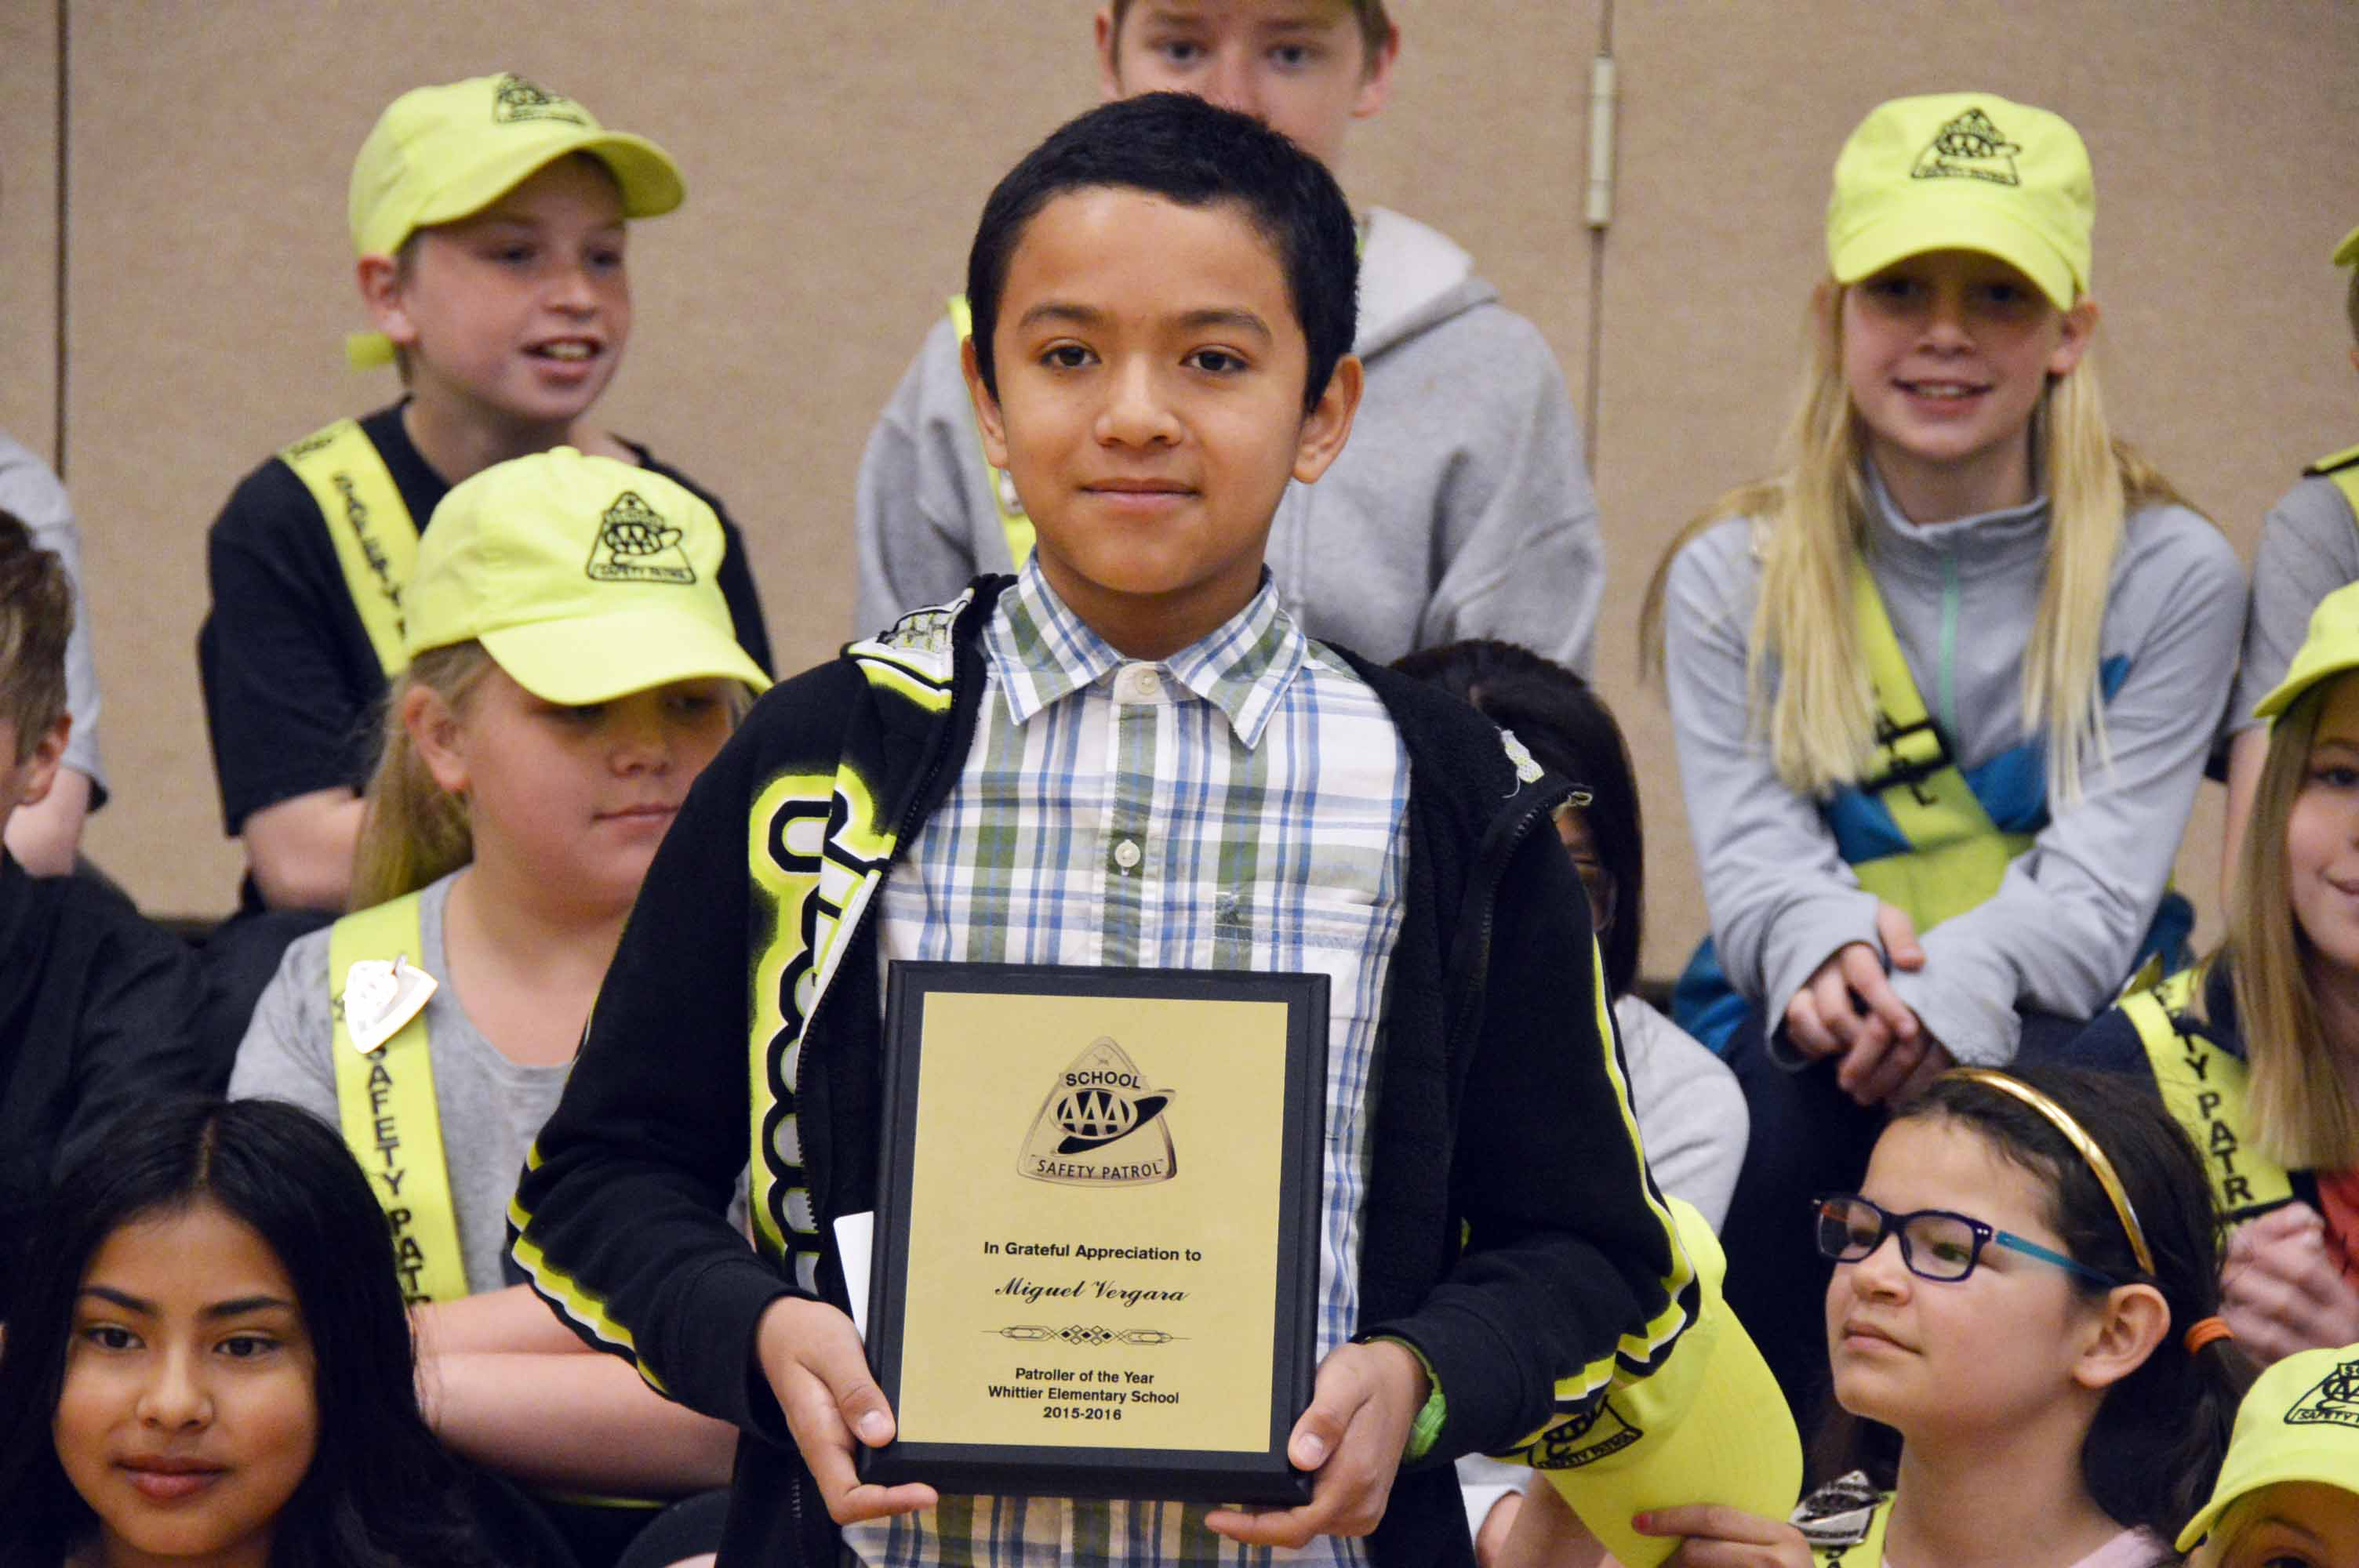 Whittier Elementary Student Named Aaa Safety Patroller Of